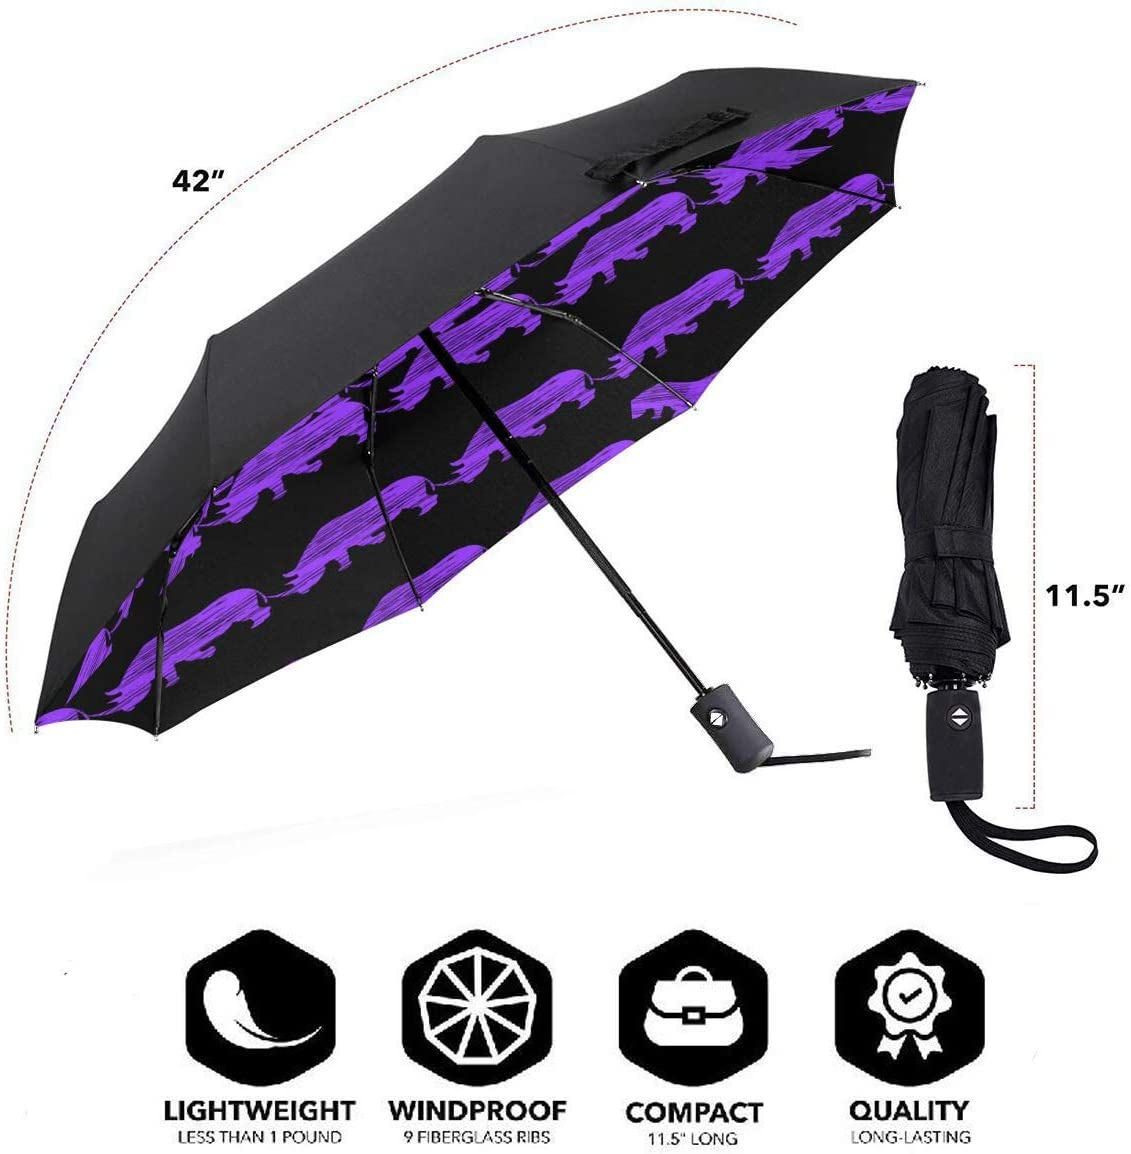 Unicorn Rhino Automatic Tri-Fold Umbrella Parasol Sun Umbrella Sunshade